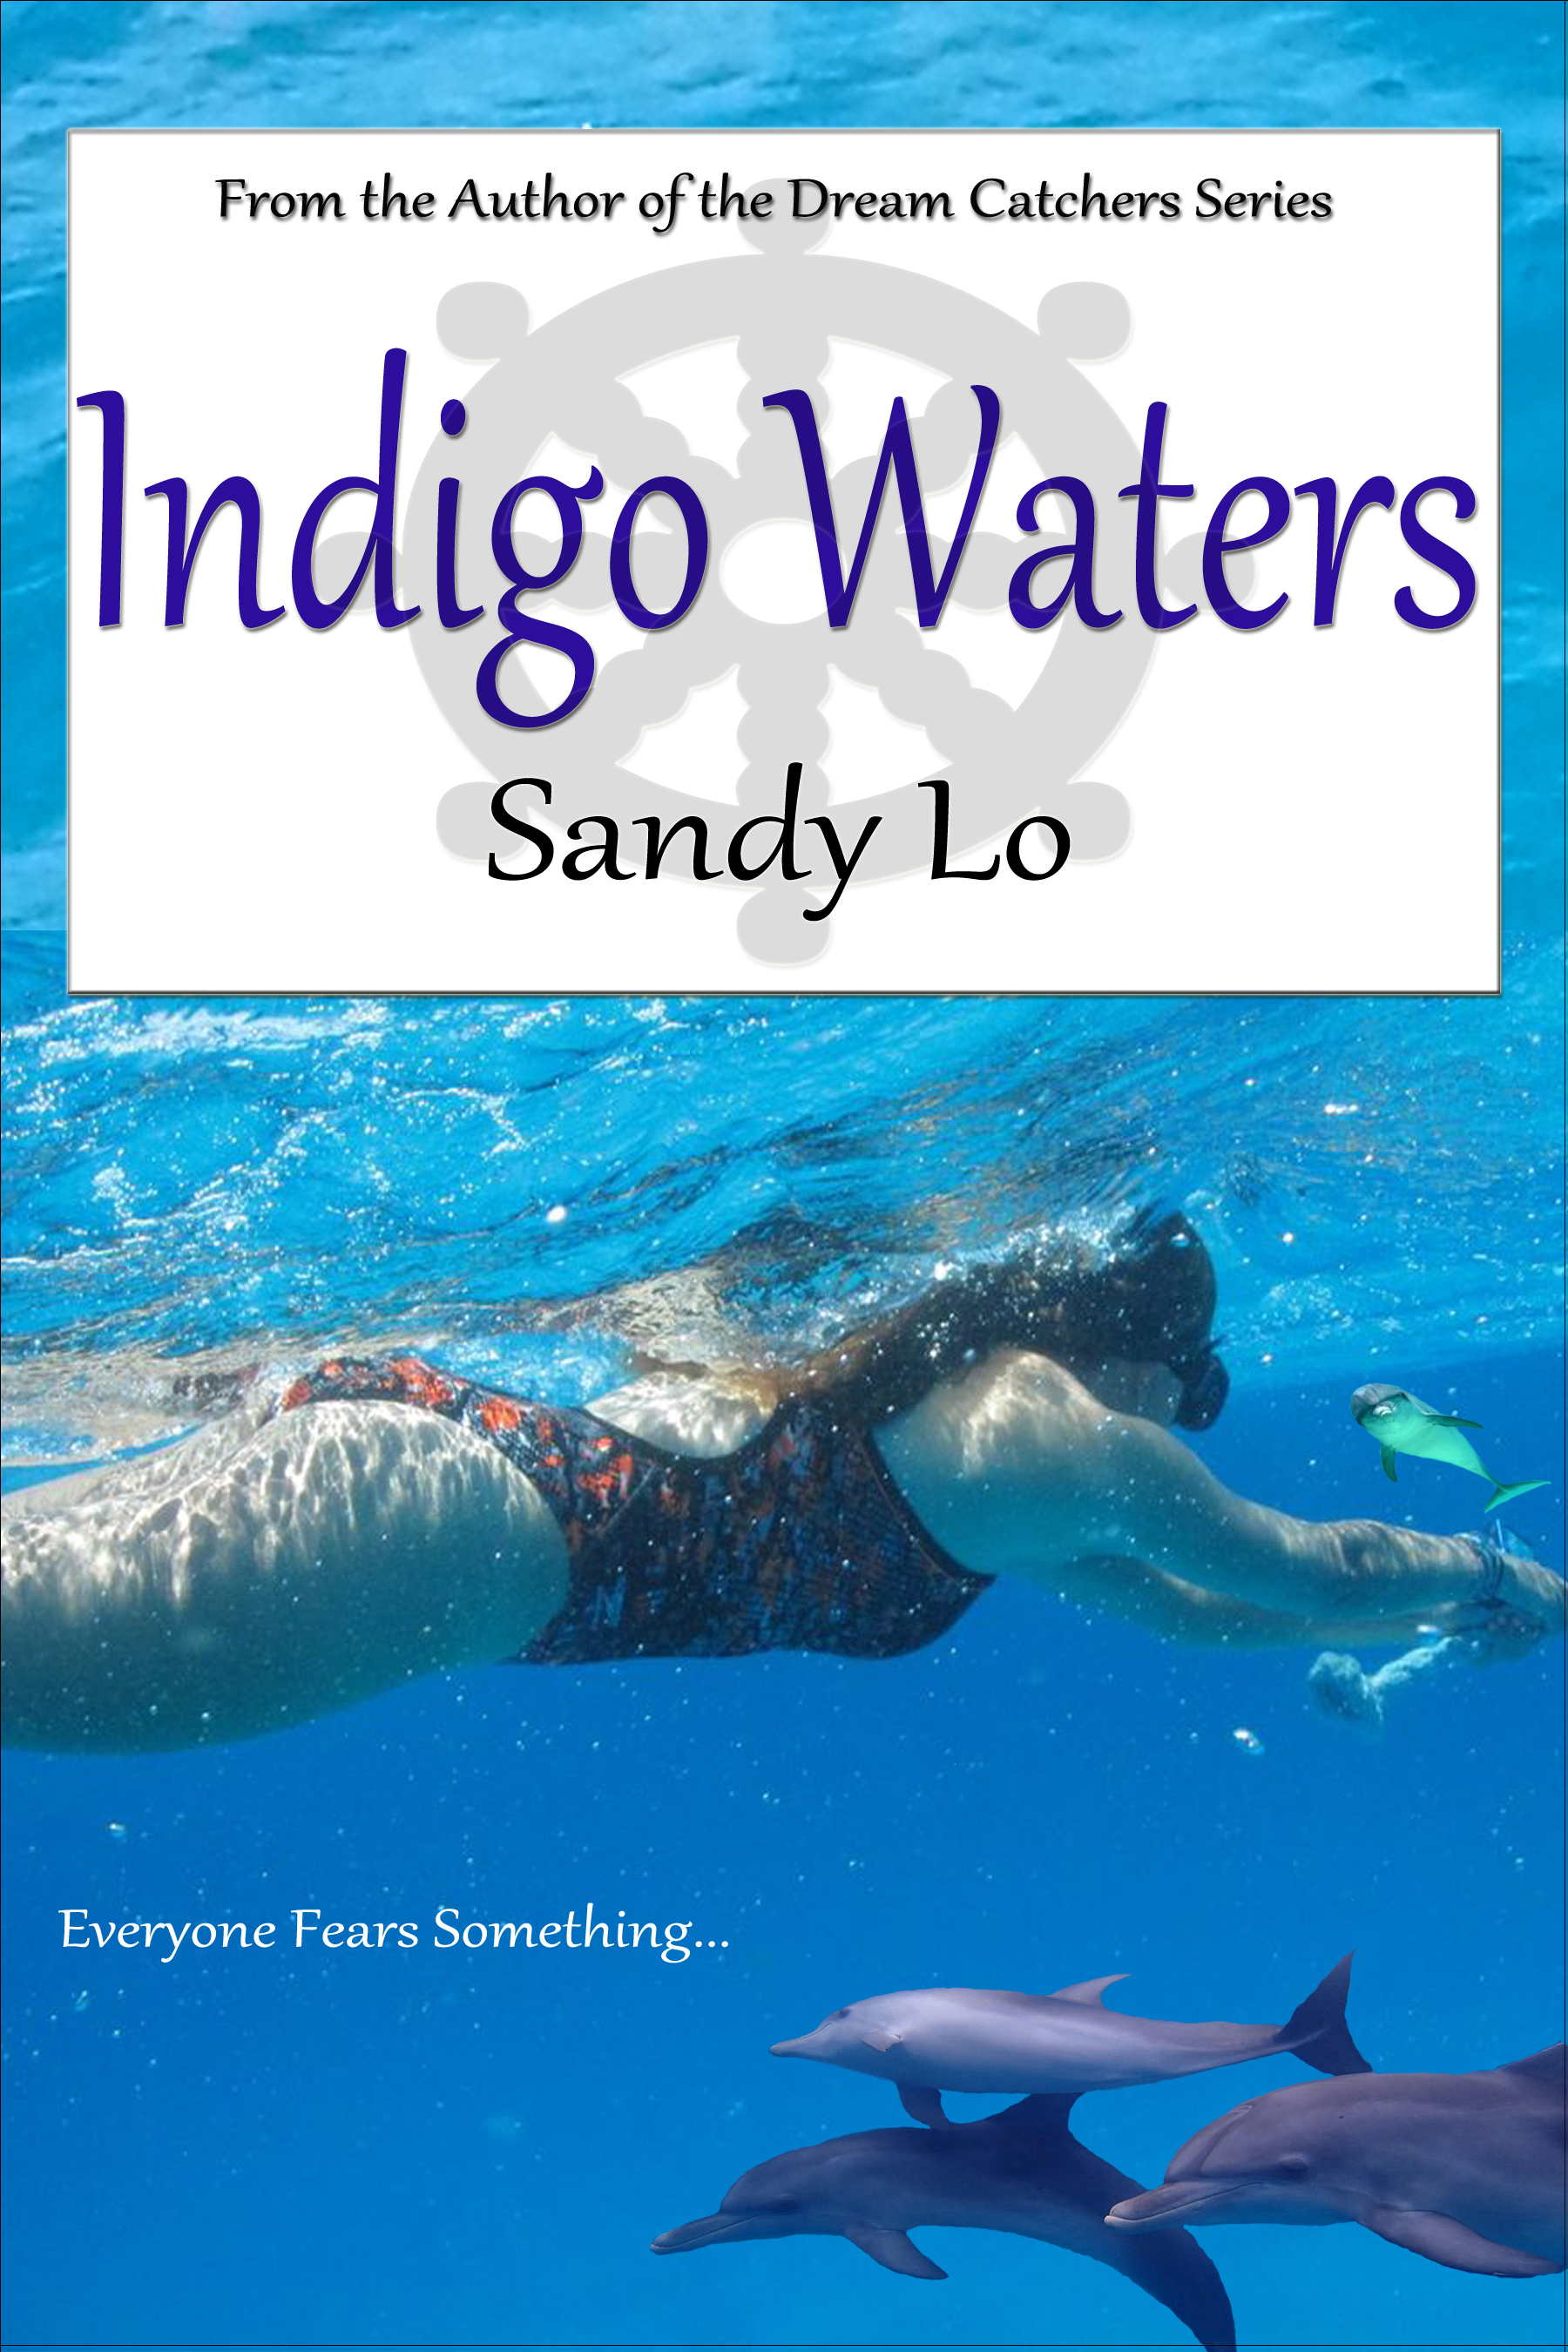 IndigoWaters